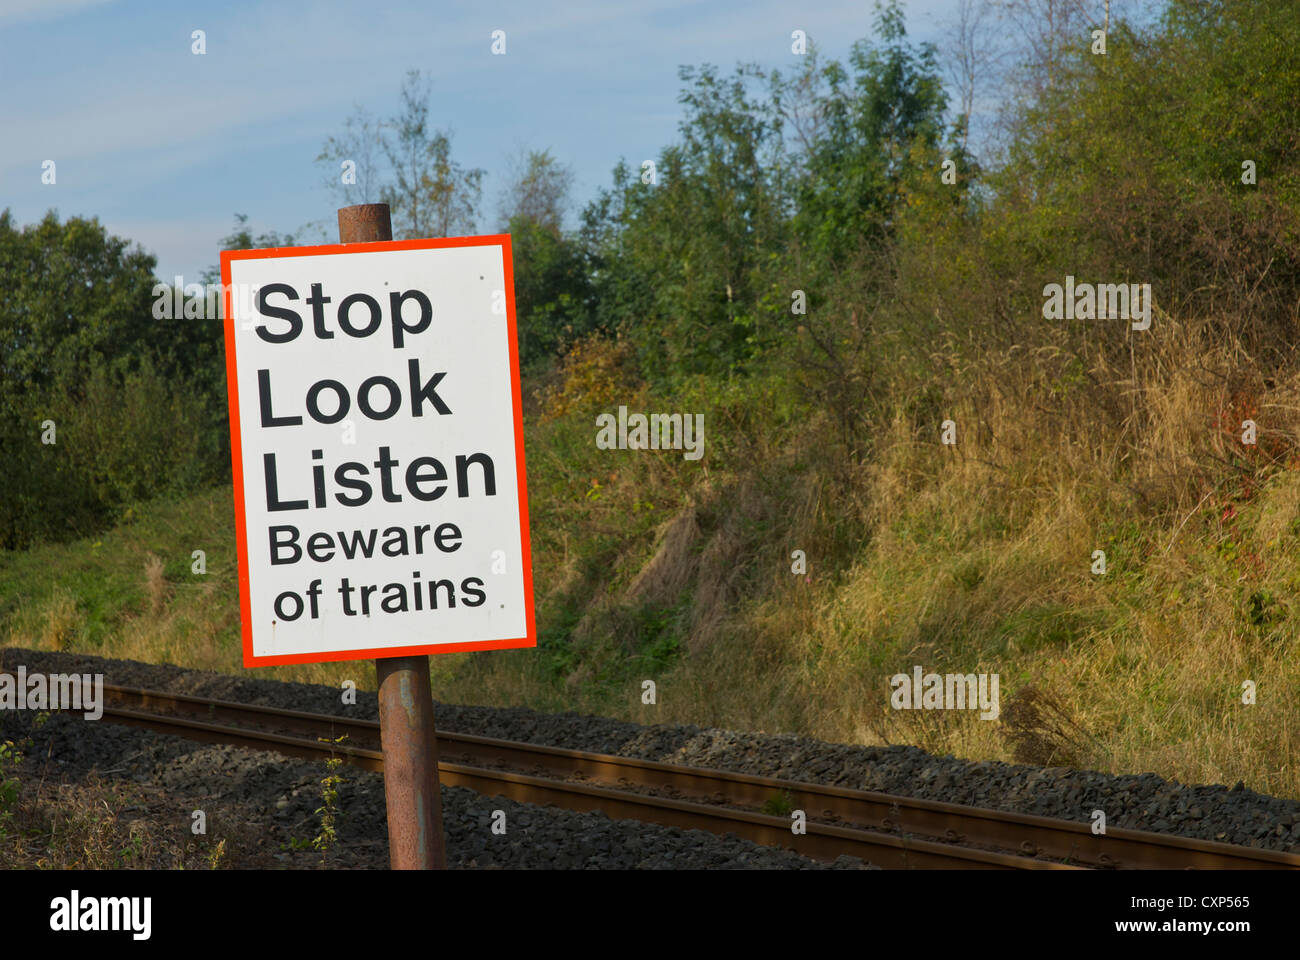 Sign by pedestrian crossing over railway line, warning people about trains - Stock Image